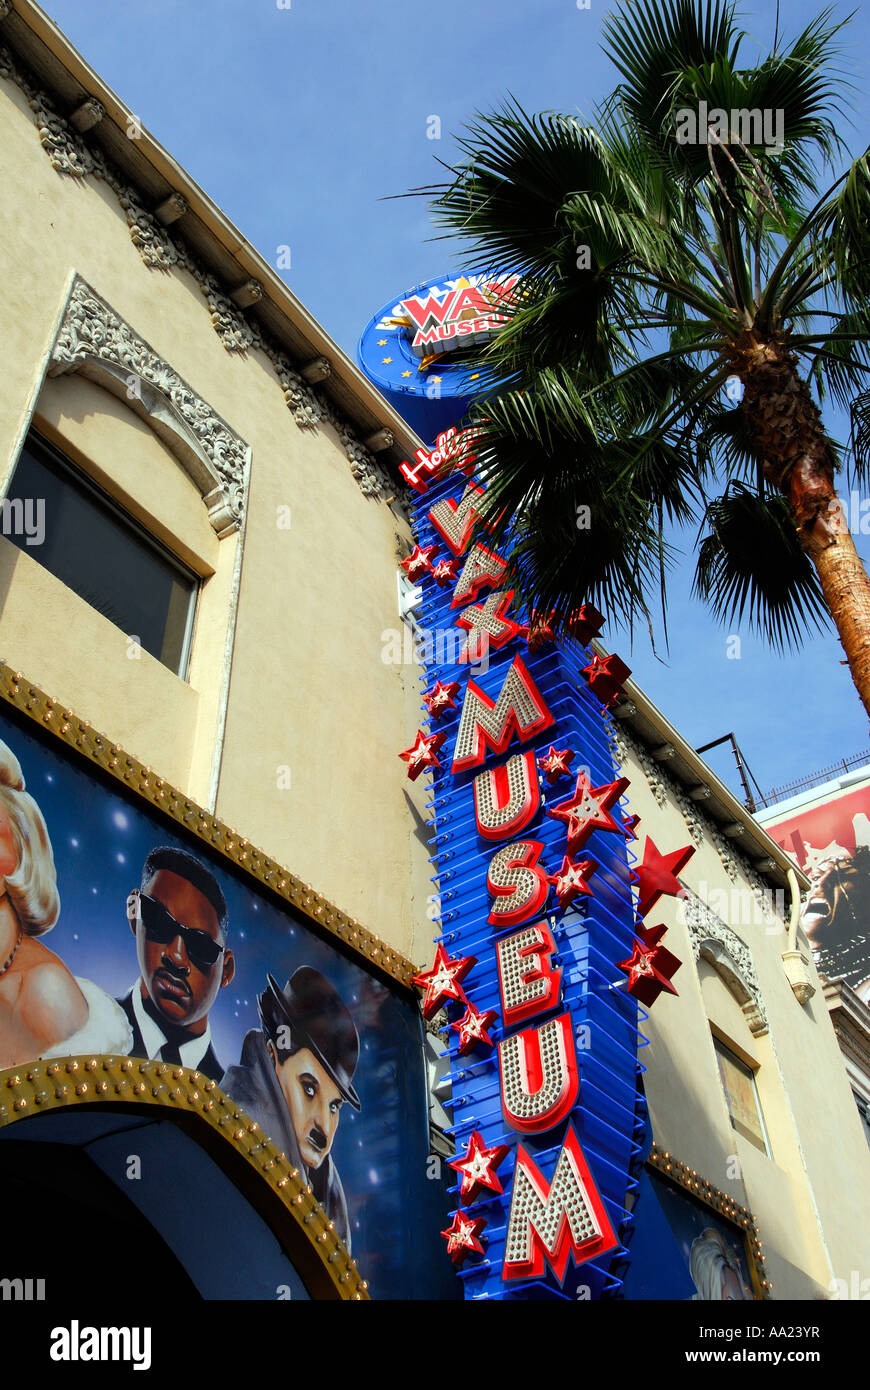 Wax Works Museum on Hollywood Boulevard, Hollywood, Los Angeles, California USA - Stock Image